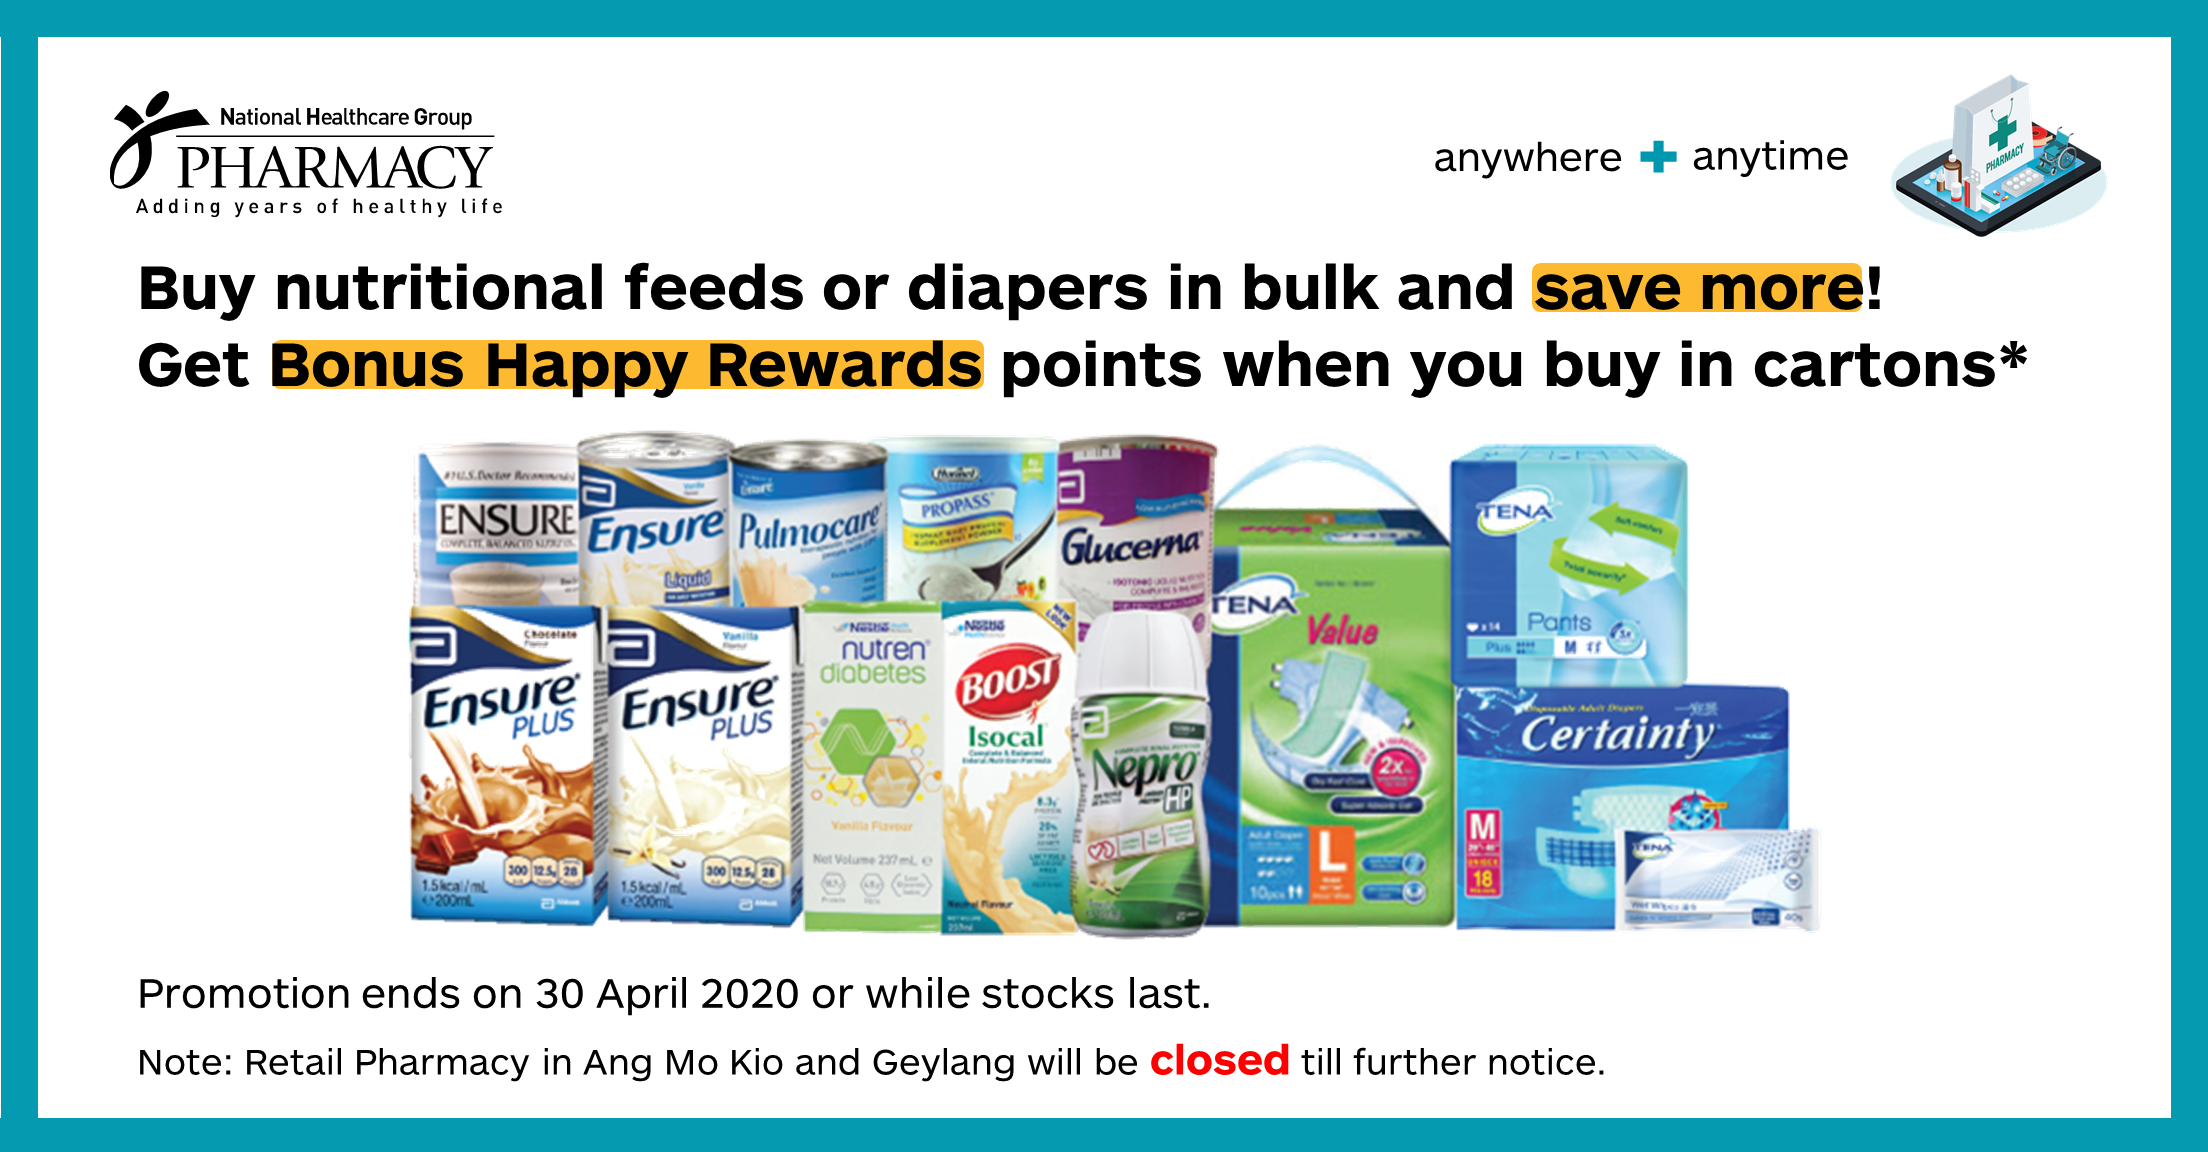 Buy nutritional feeds or diapers in bulk and save more!